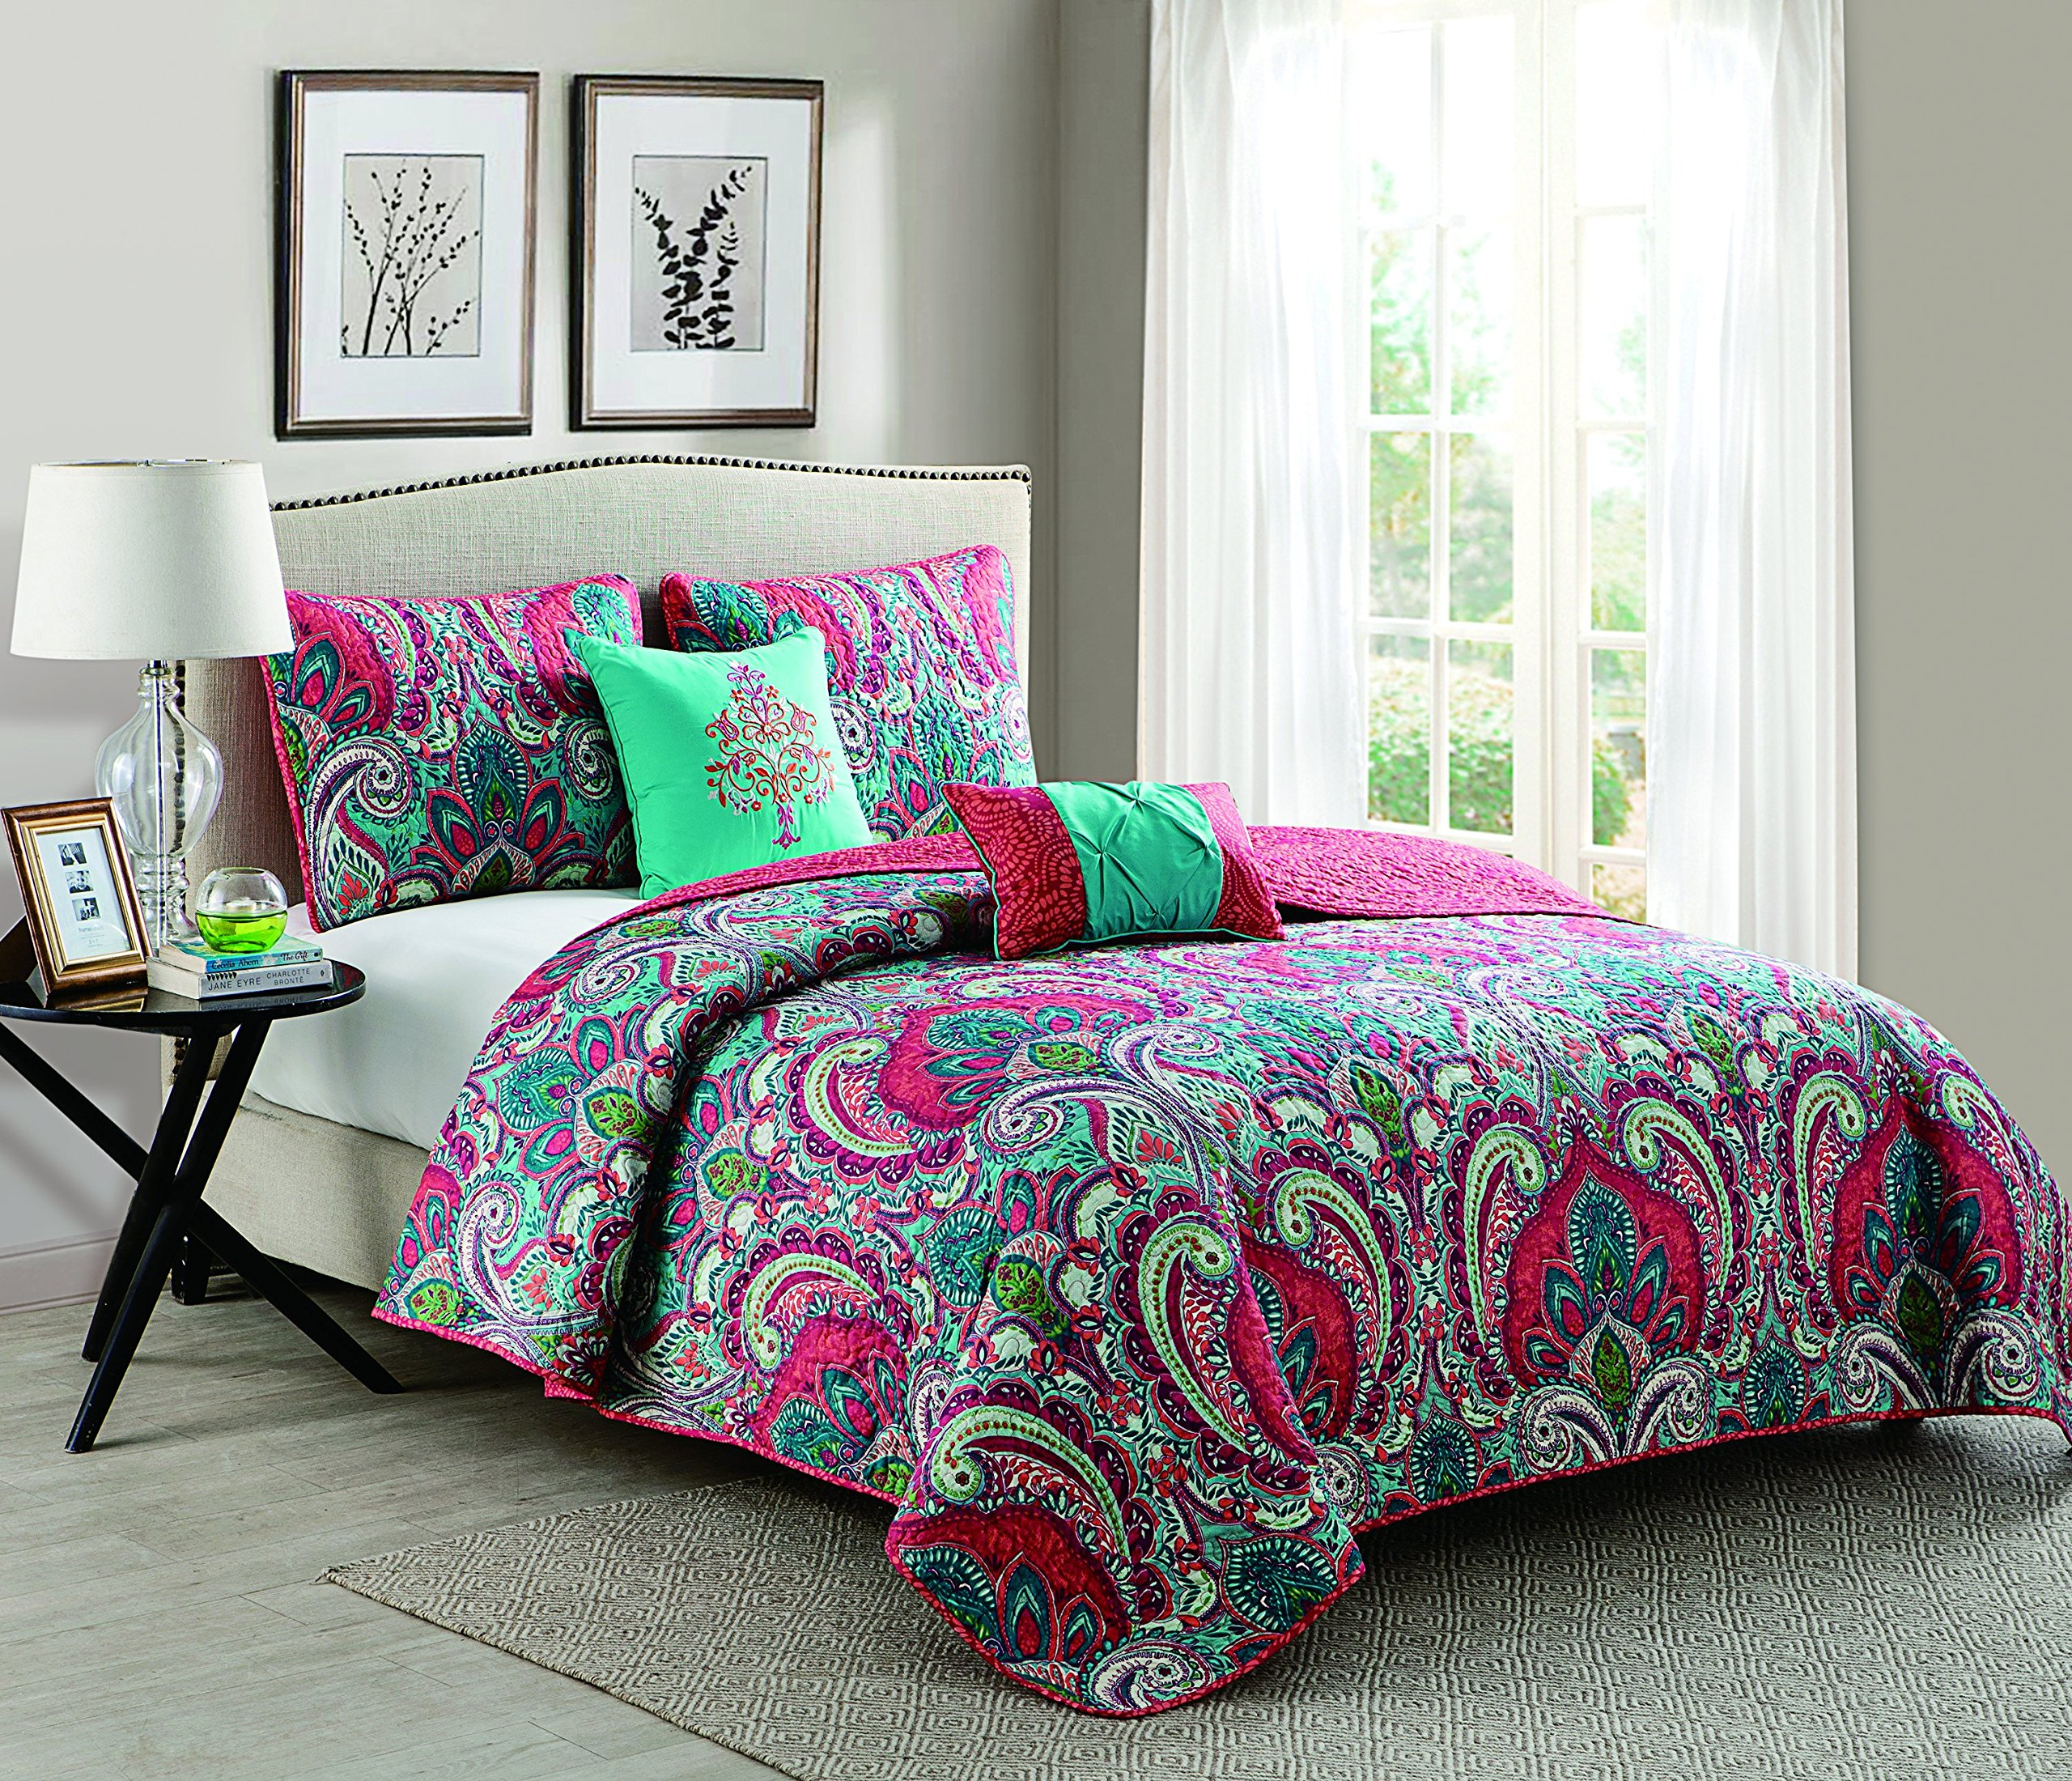 VCNY Home King Size Quilt Set in Multicolor Bohemian Style Paisley 5 Pc Set w/Decorative Pillows